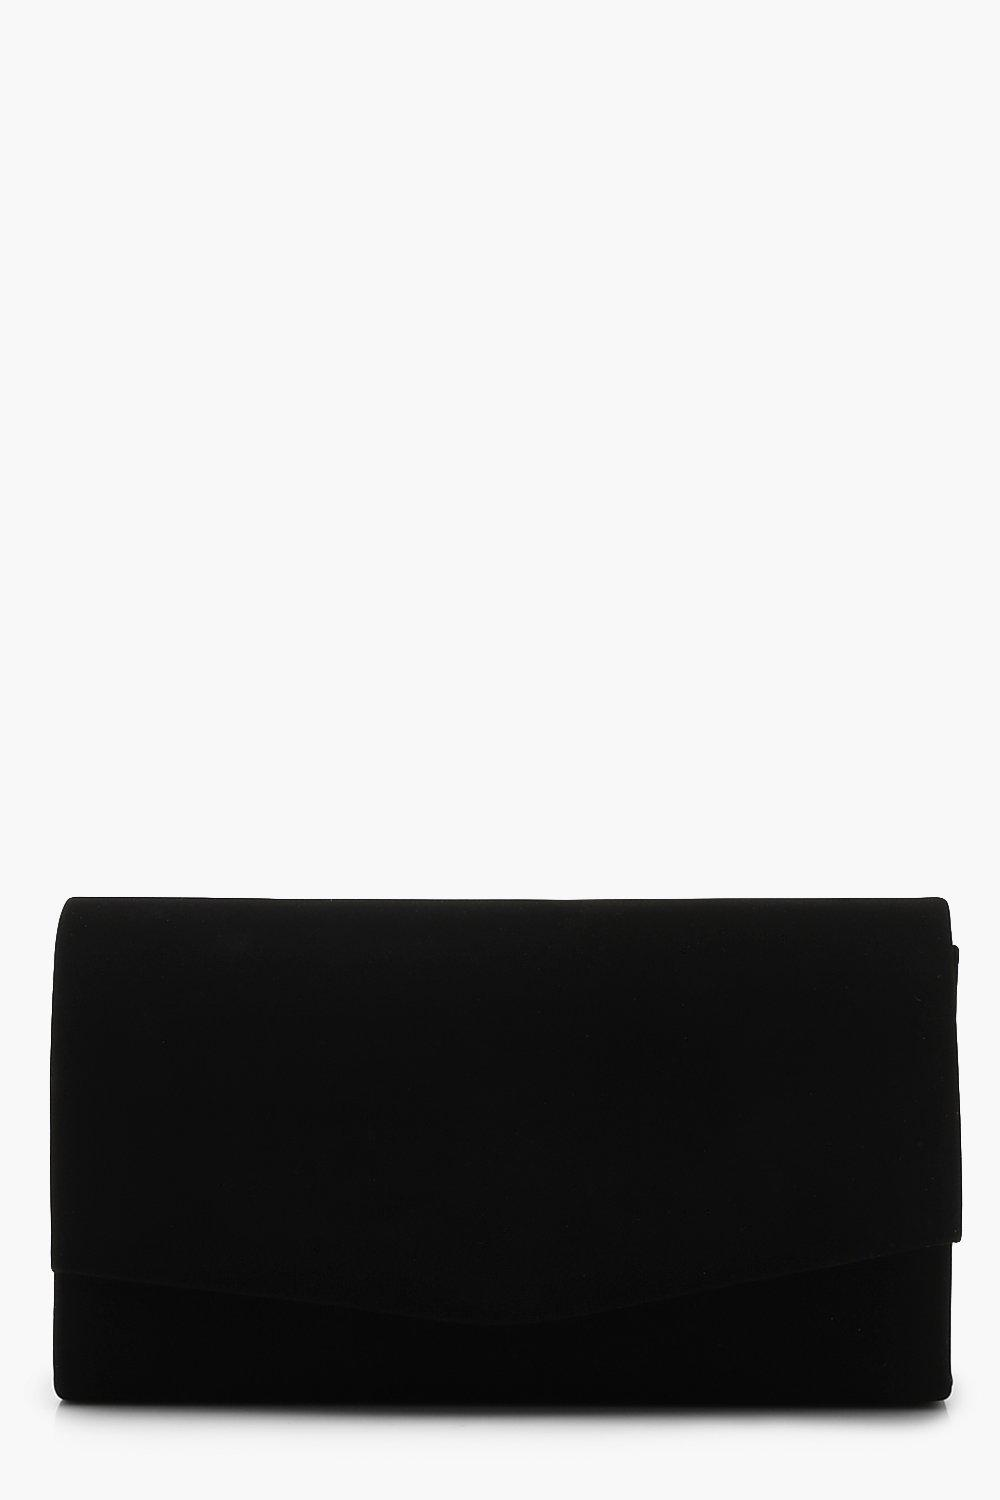 boohoo Womens Structured Suedette Clutch Bag & Chain - Black - One Size, Black